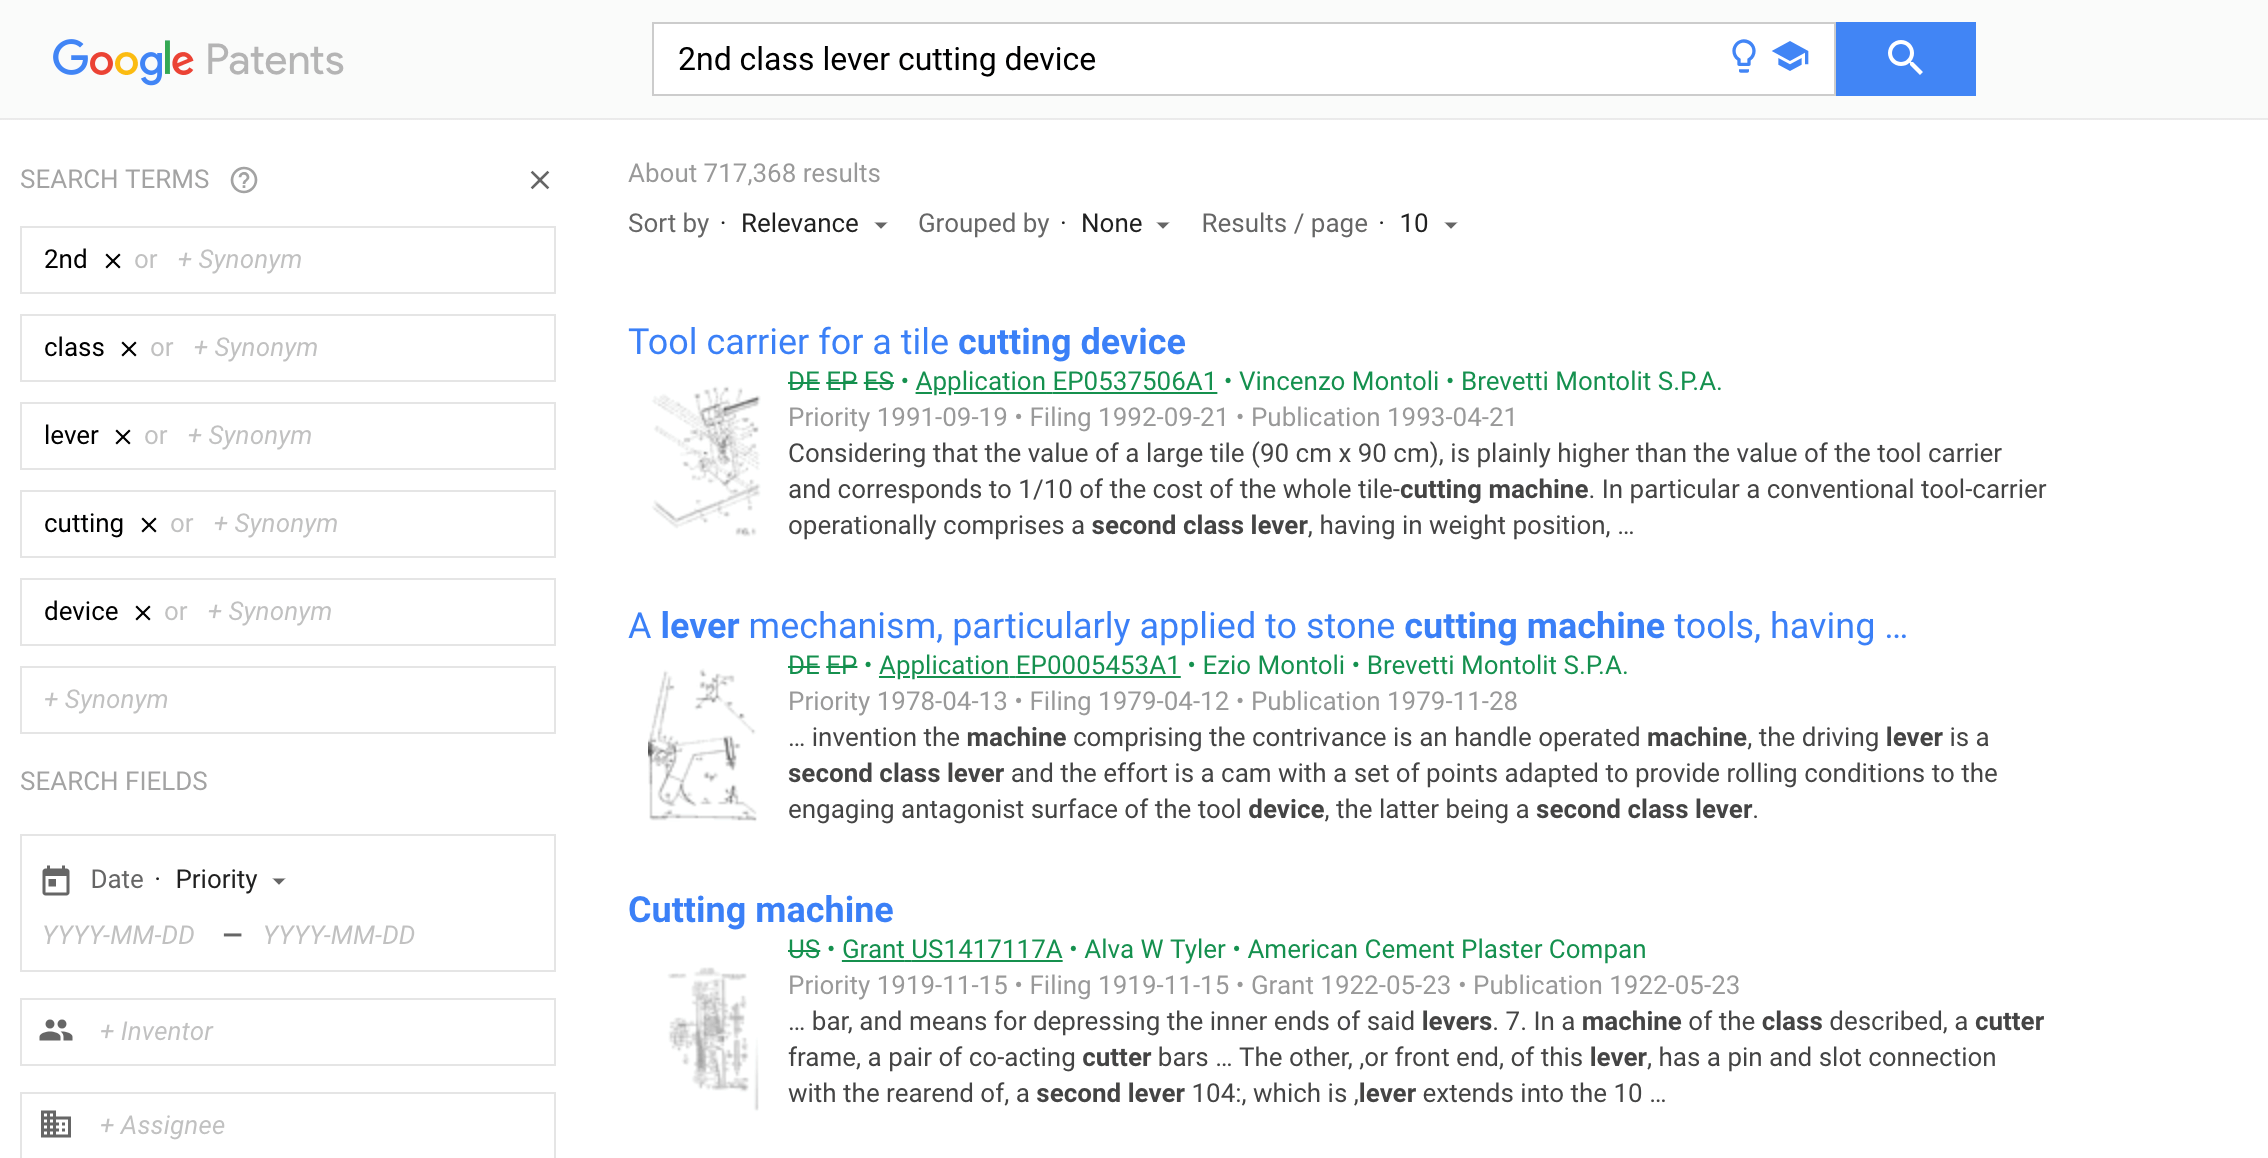 Google patents search for 2nd class lever cutting device